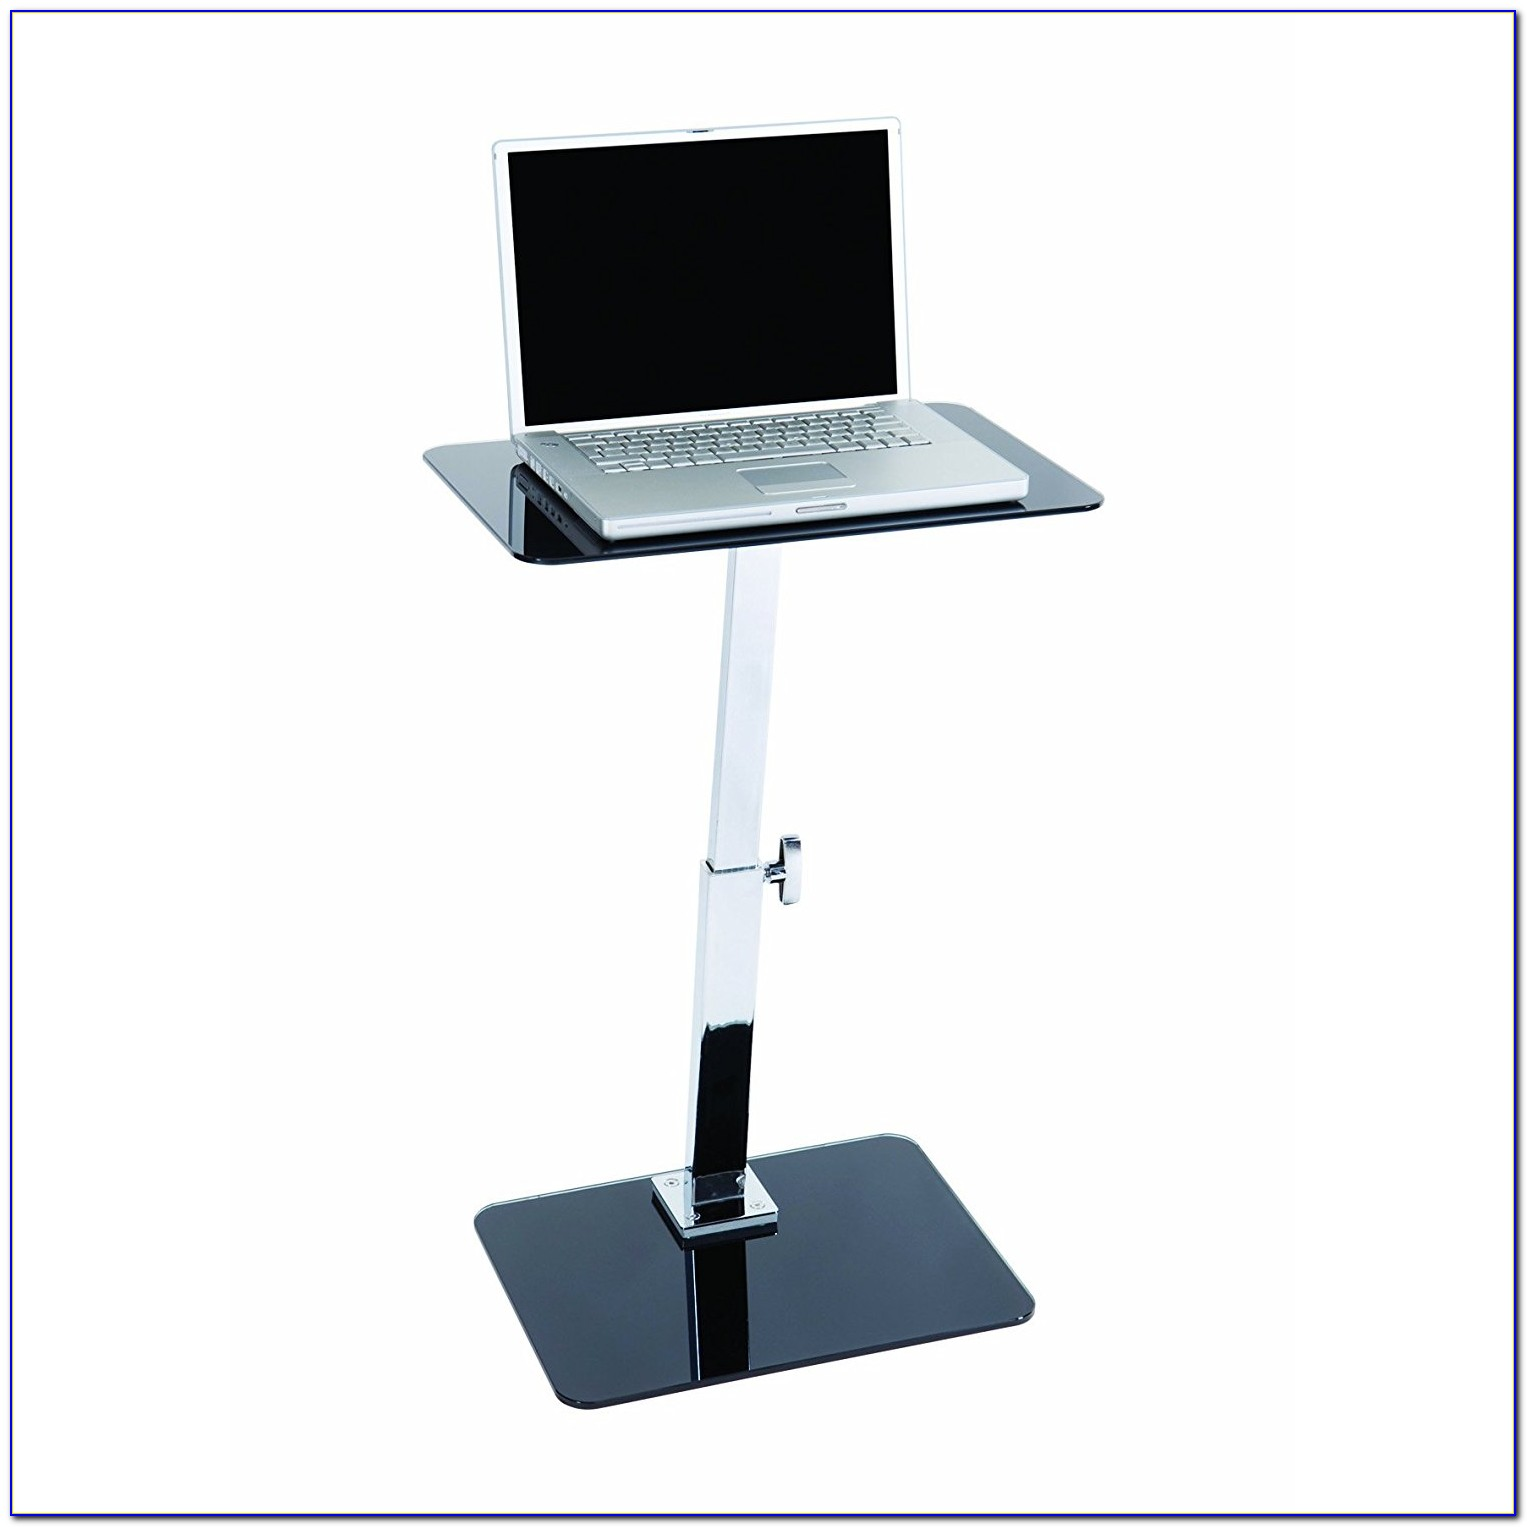 Tabletop Projector Stand